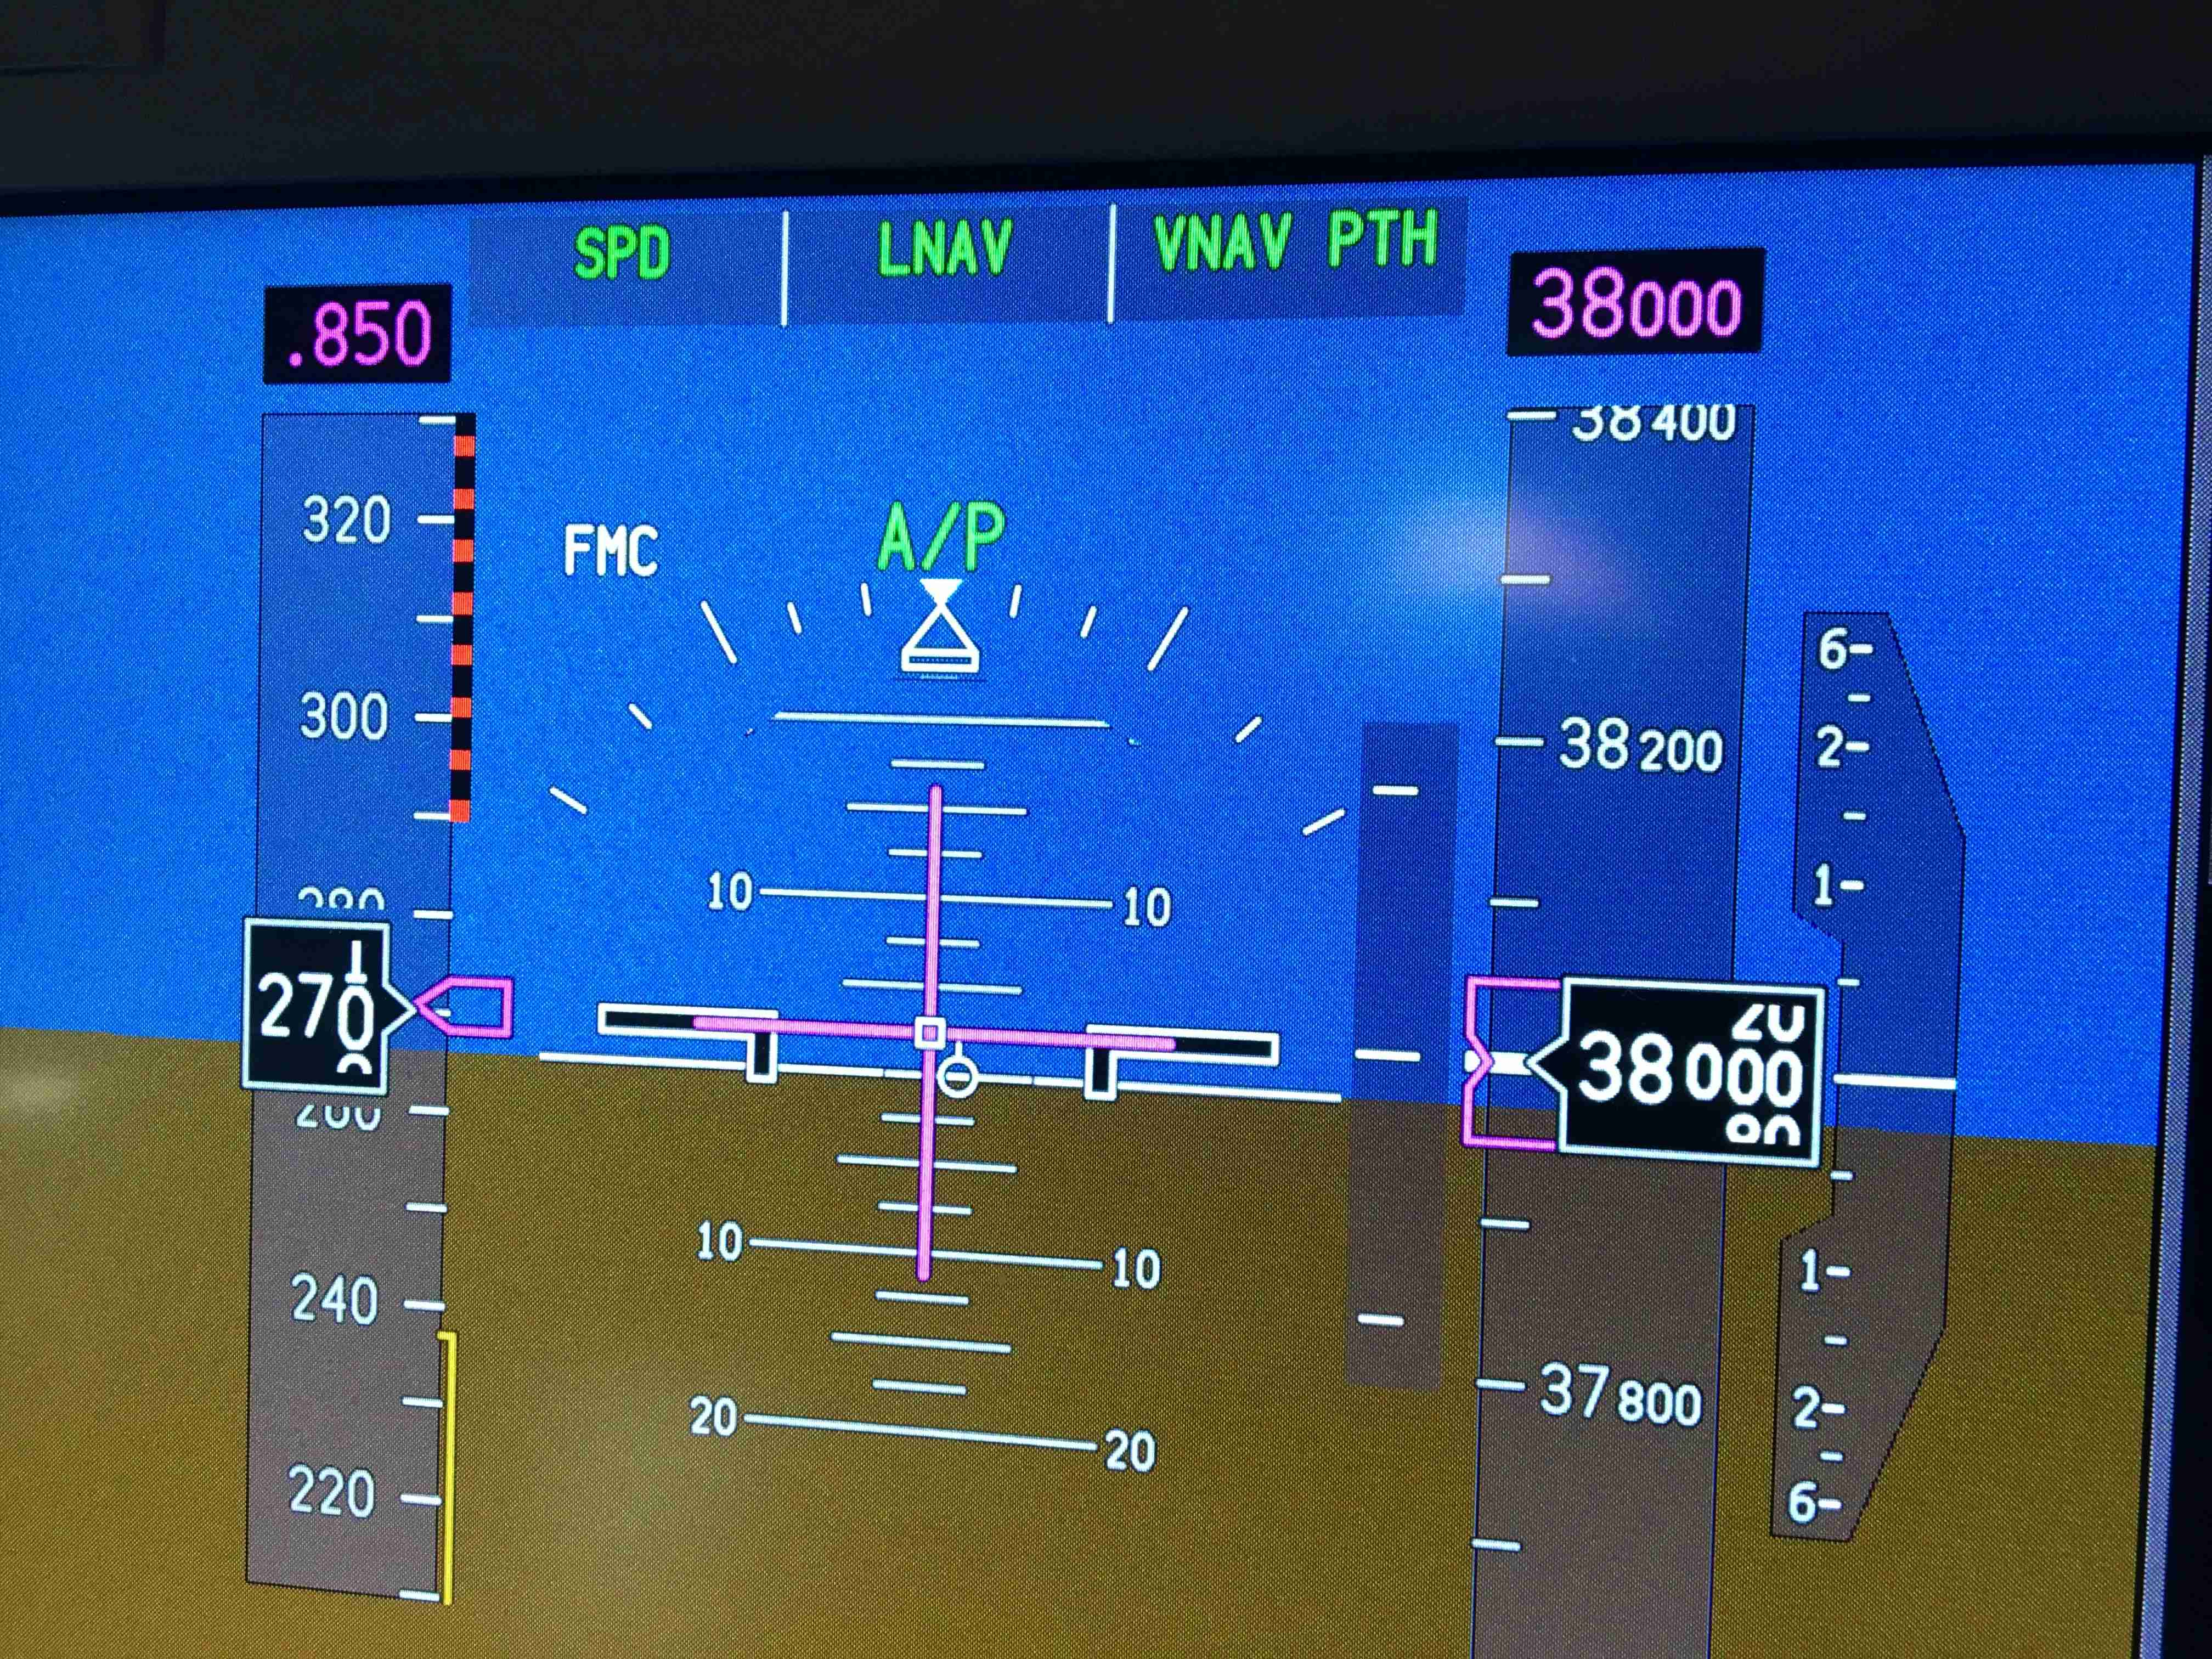 Aircraft must fly an exact speed and altitude when on the Tracks.